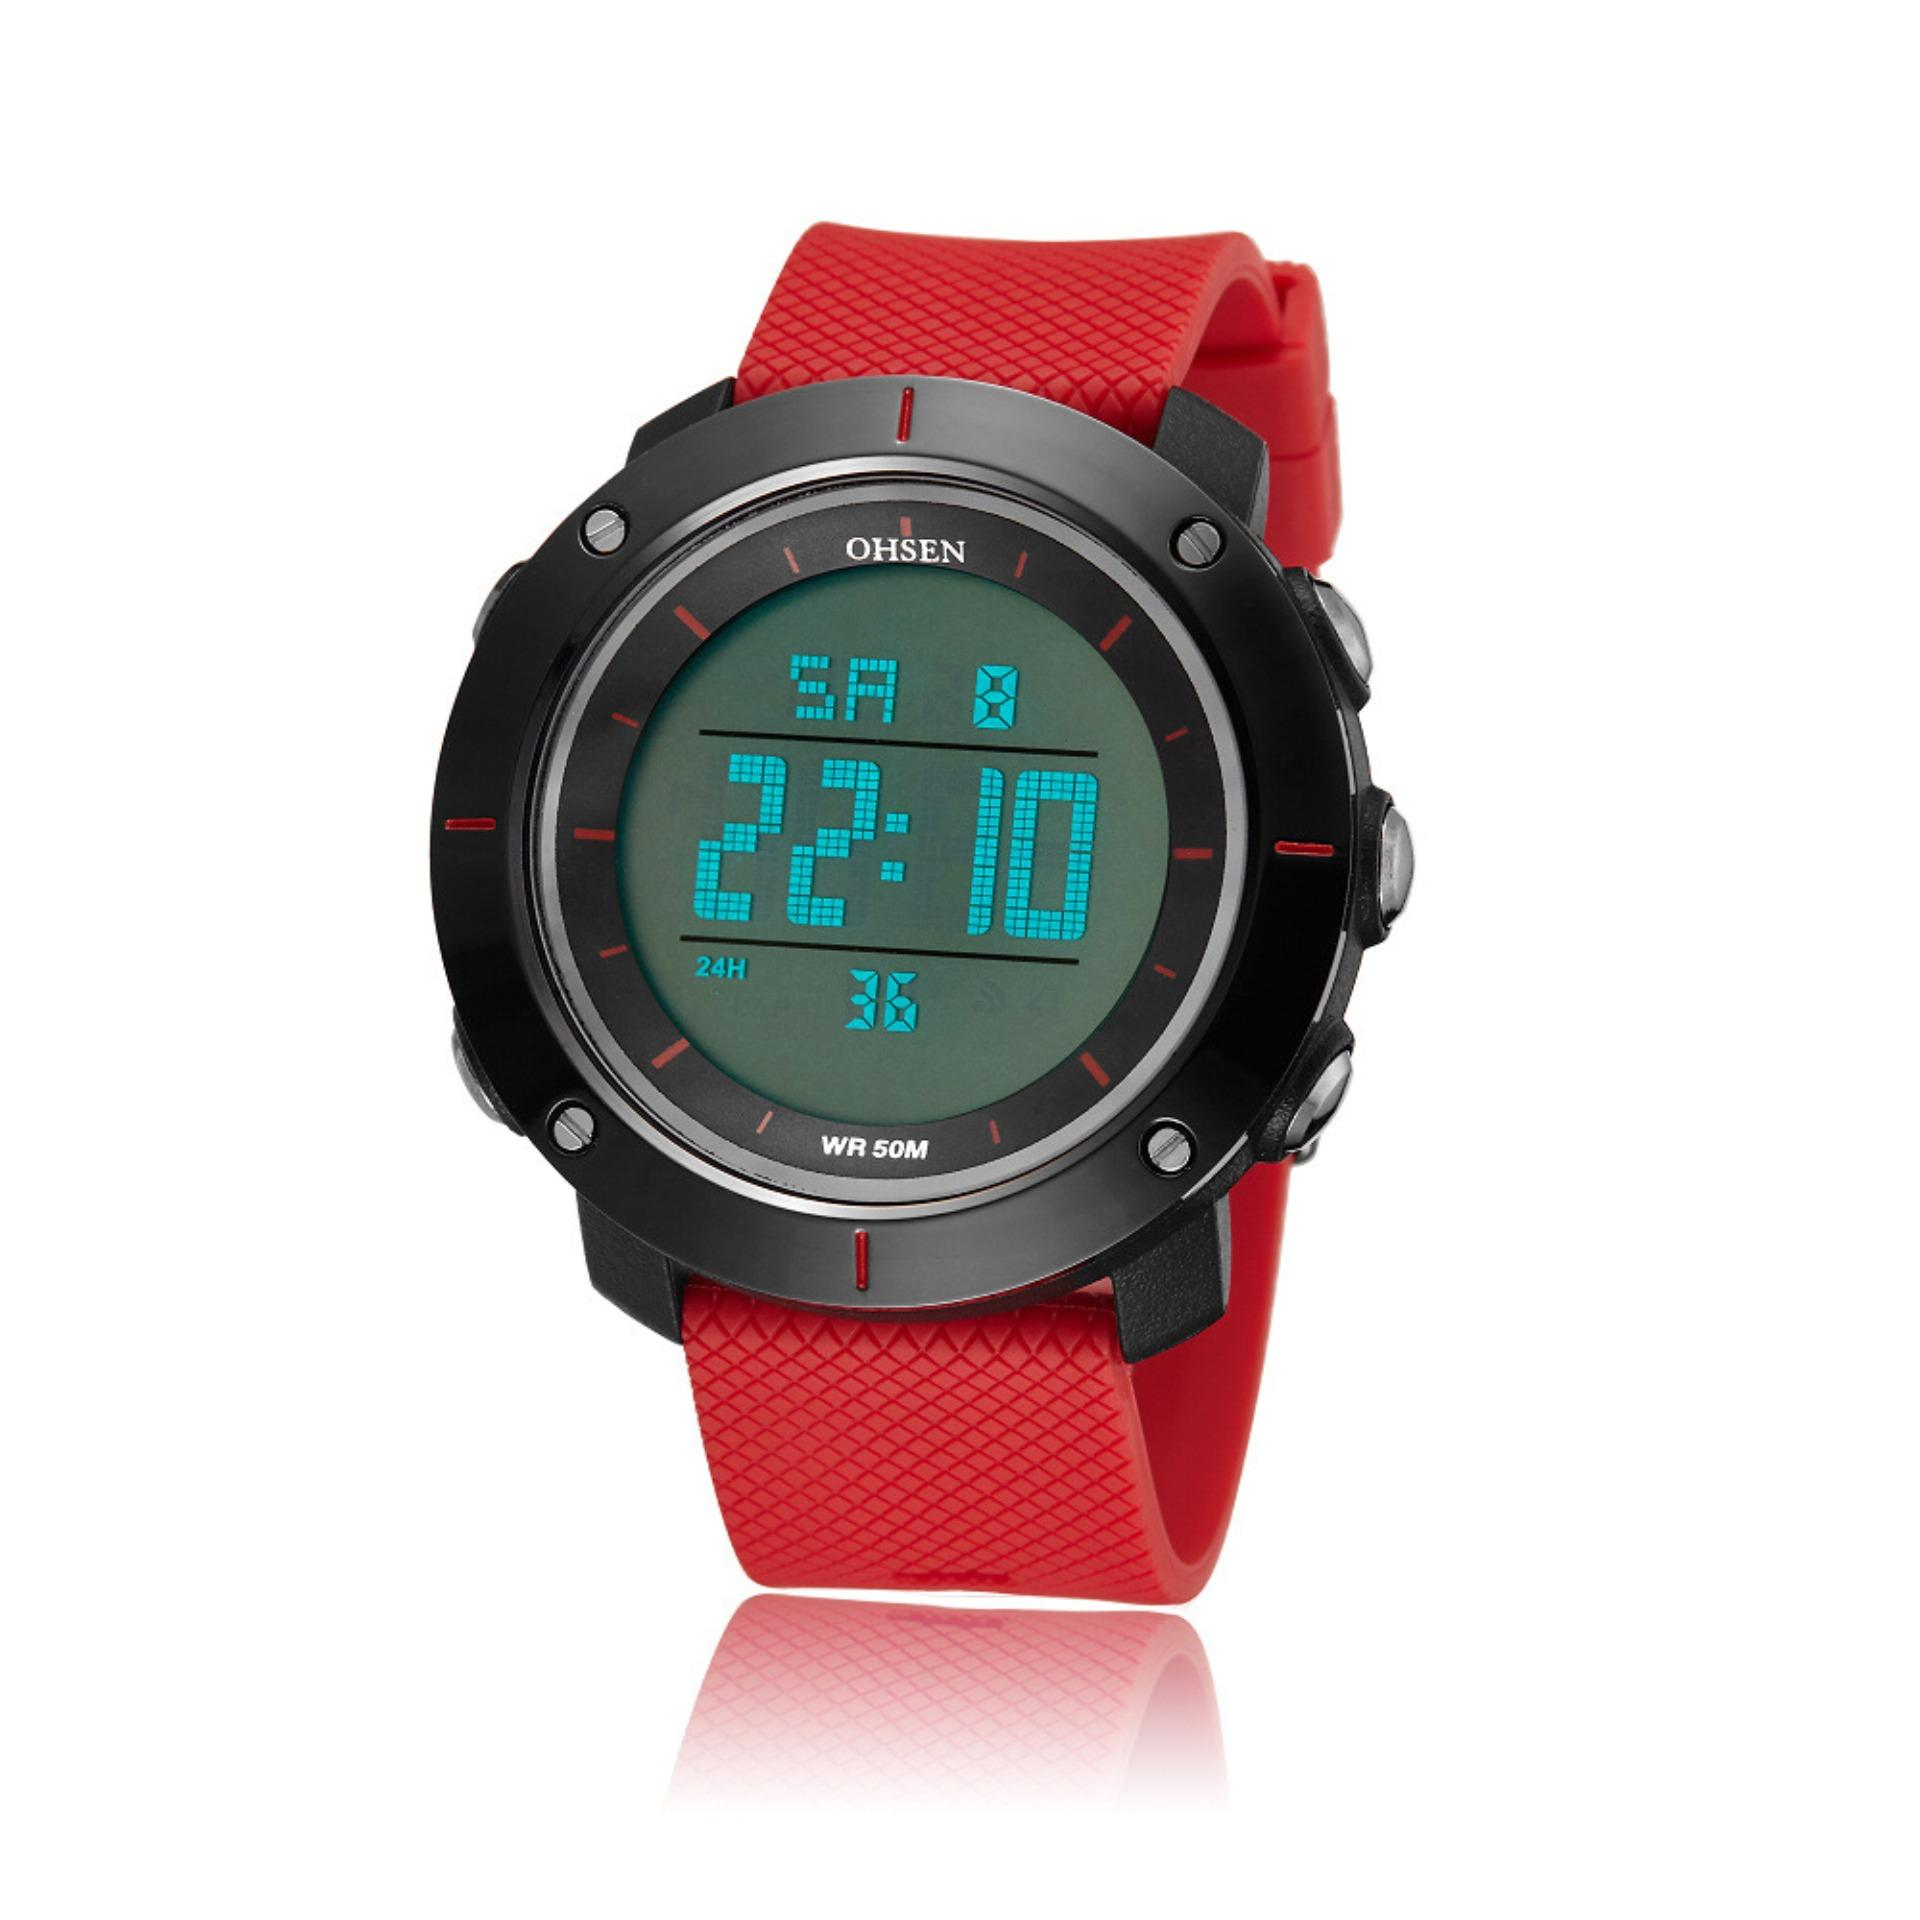 d09d9d800bf Ohsen 1611 Men s Digital Time Sport Day Date Quartz Silicone Wrist Watch  (Red)